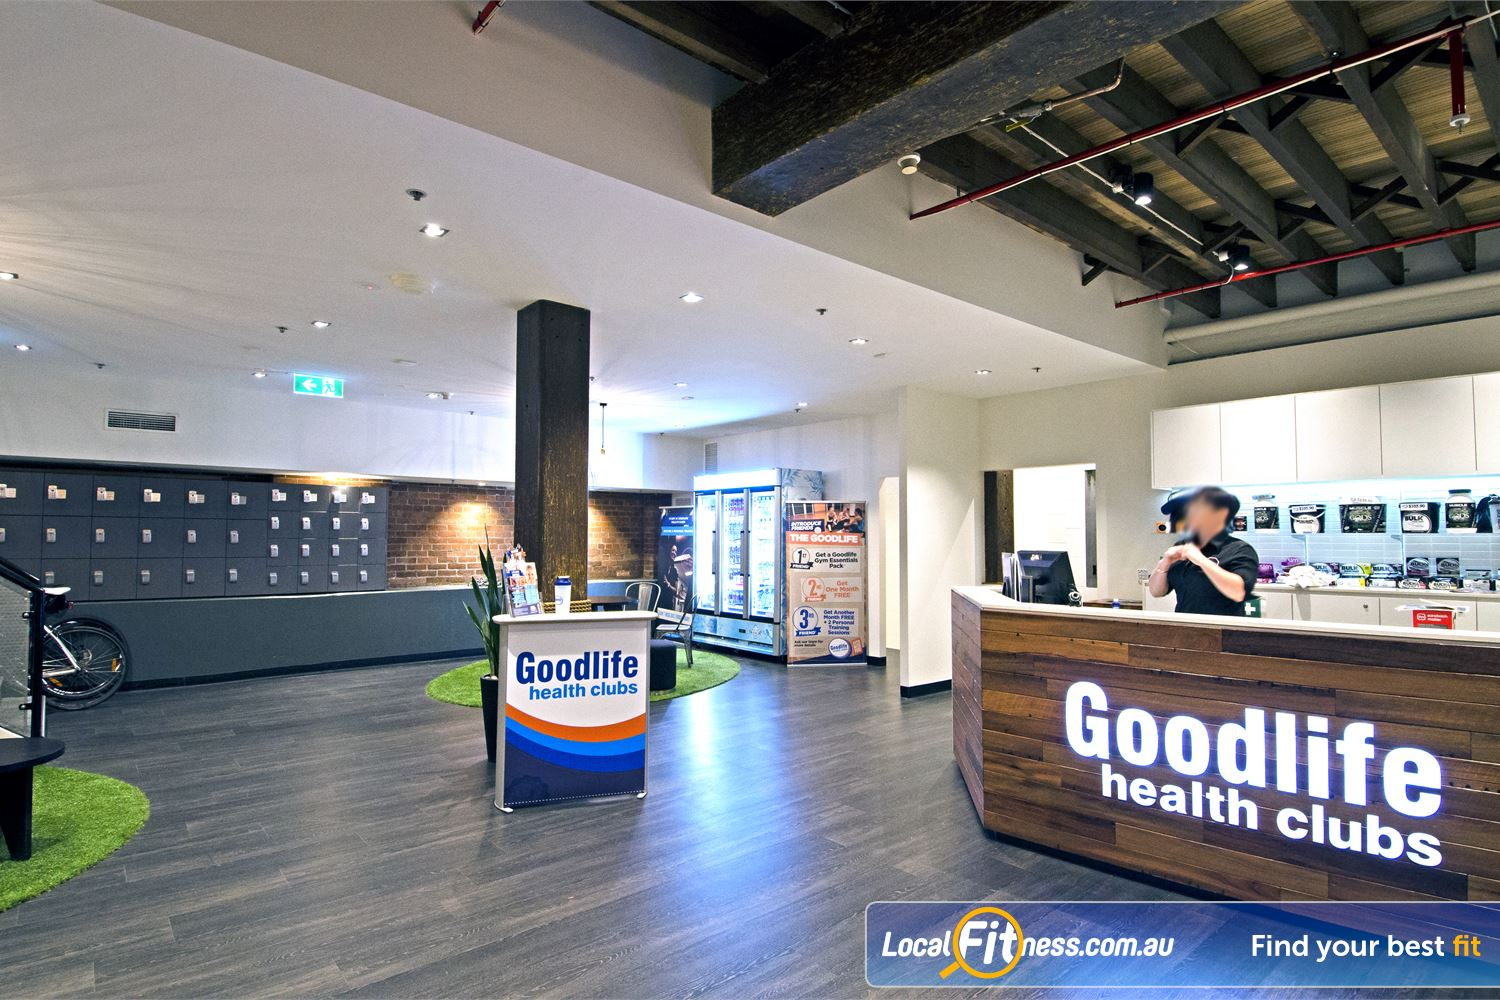 Goodlife Health Clubs Edward St Brisbane Meet our friendly Goodlife team who will take care of your every need.